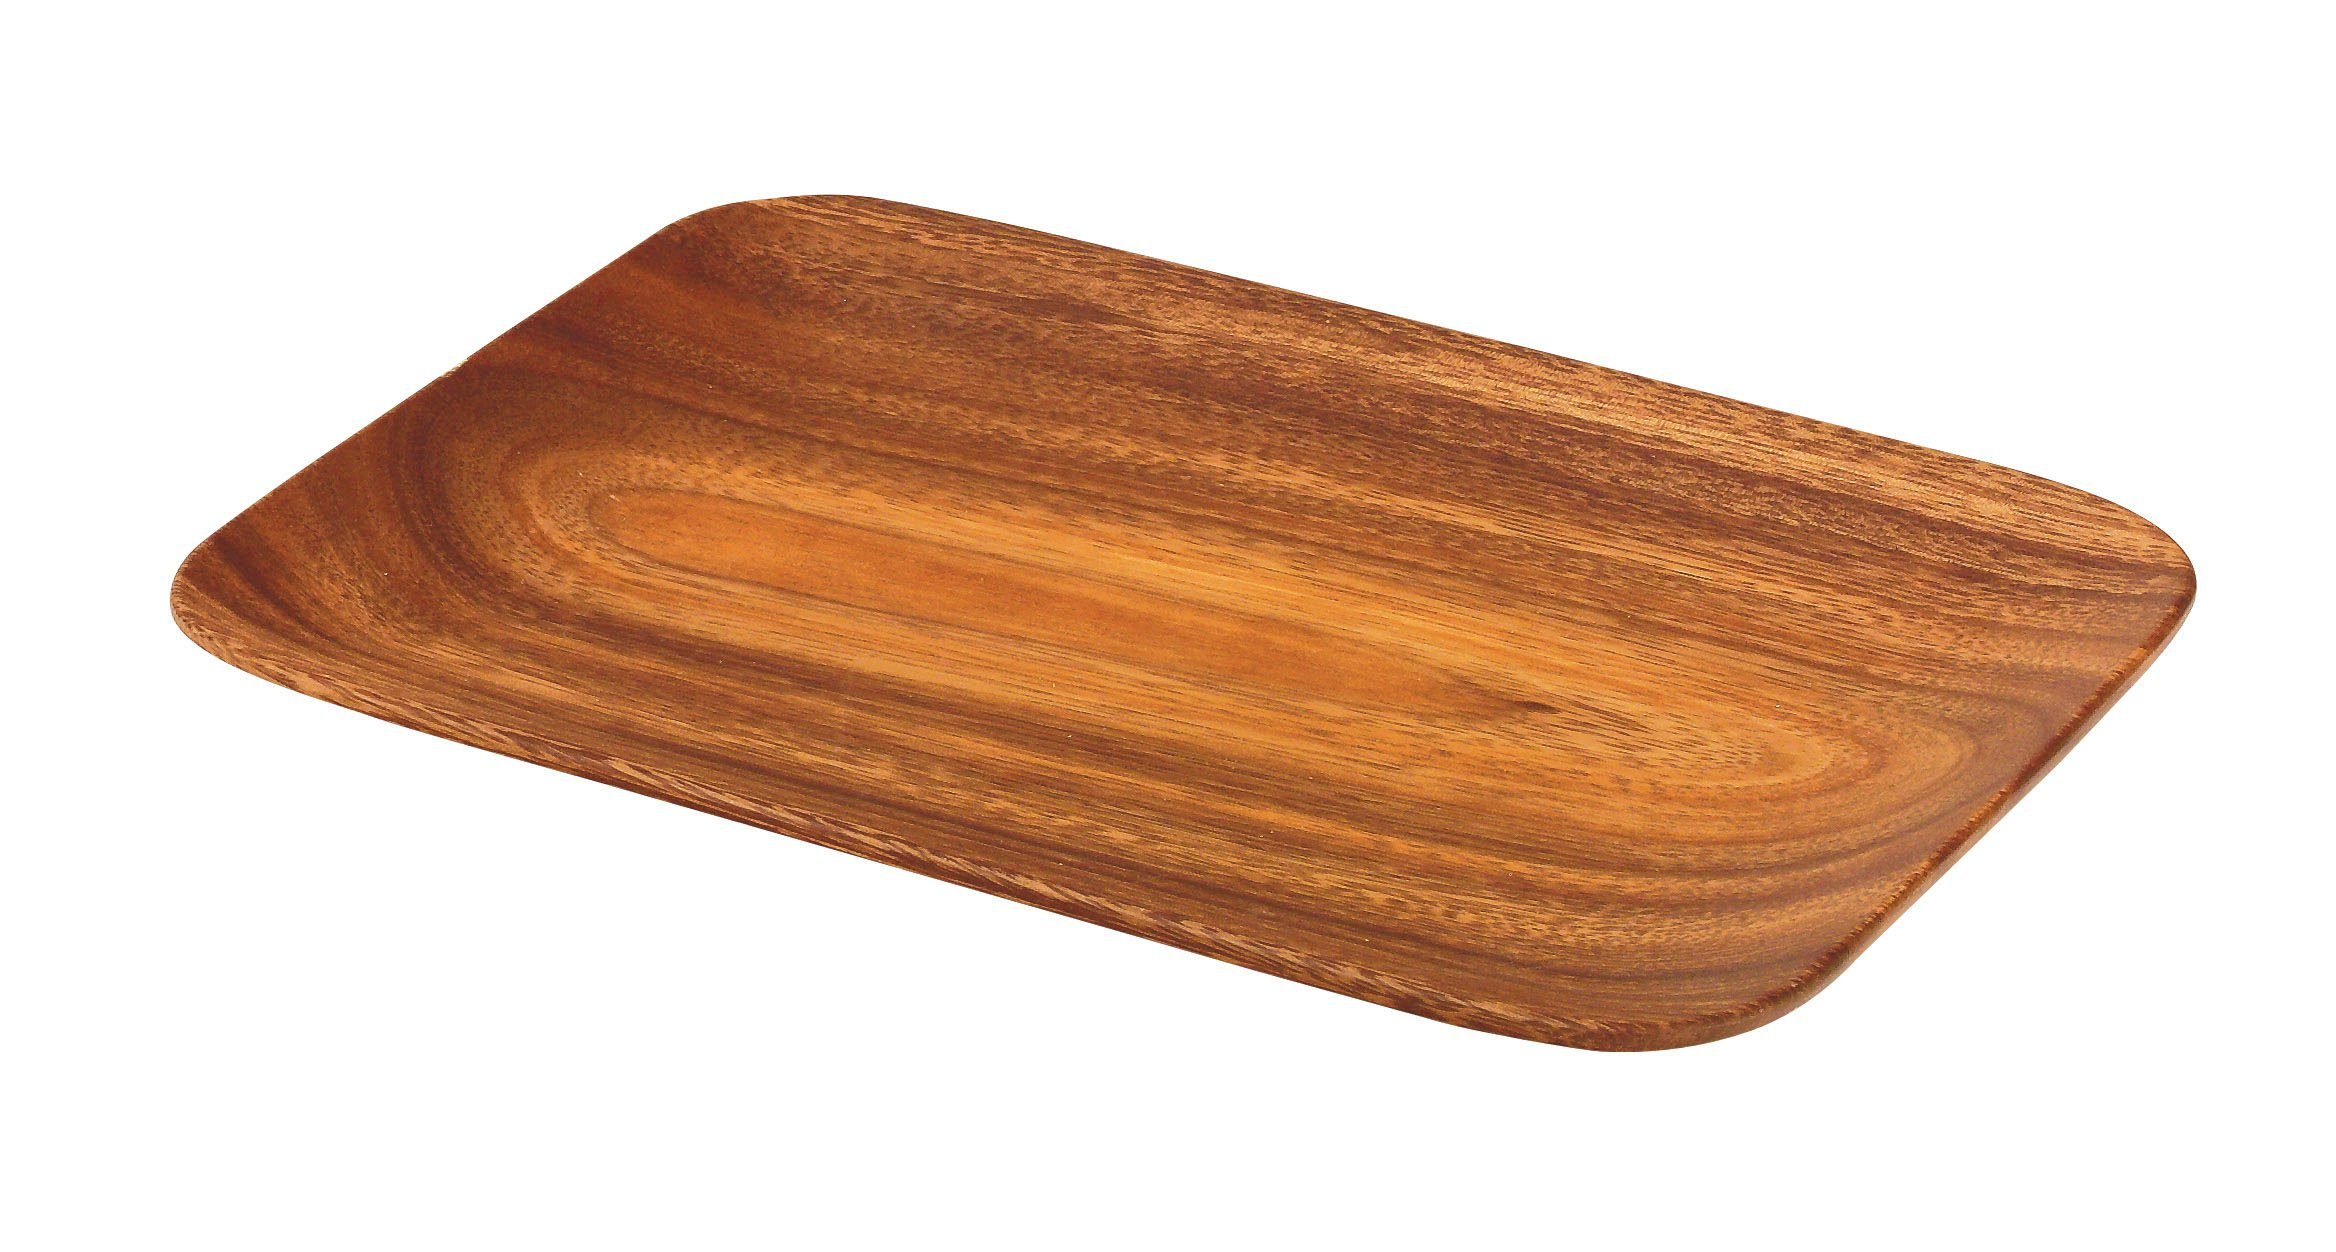 Pacific Merchants Acaciaware 10.5- by 7.25- by .75-Inch Acacia Wood Rectangle Serving Tray